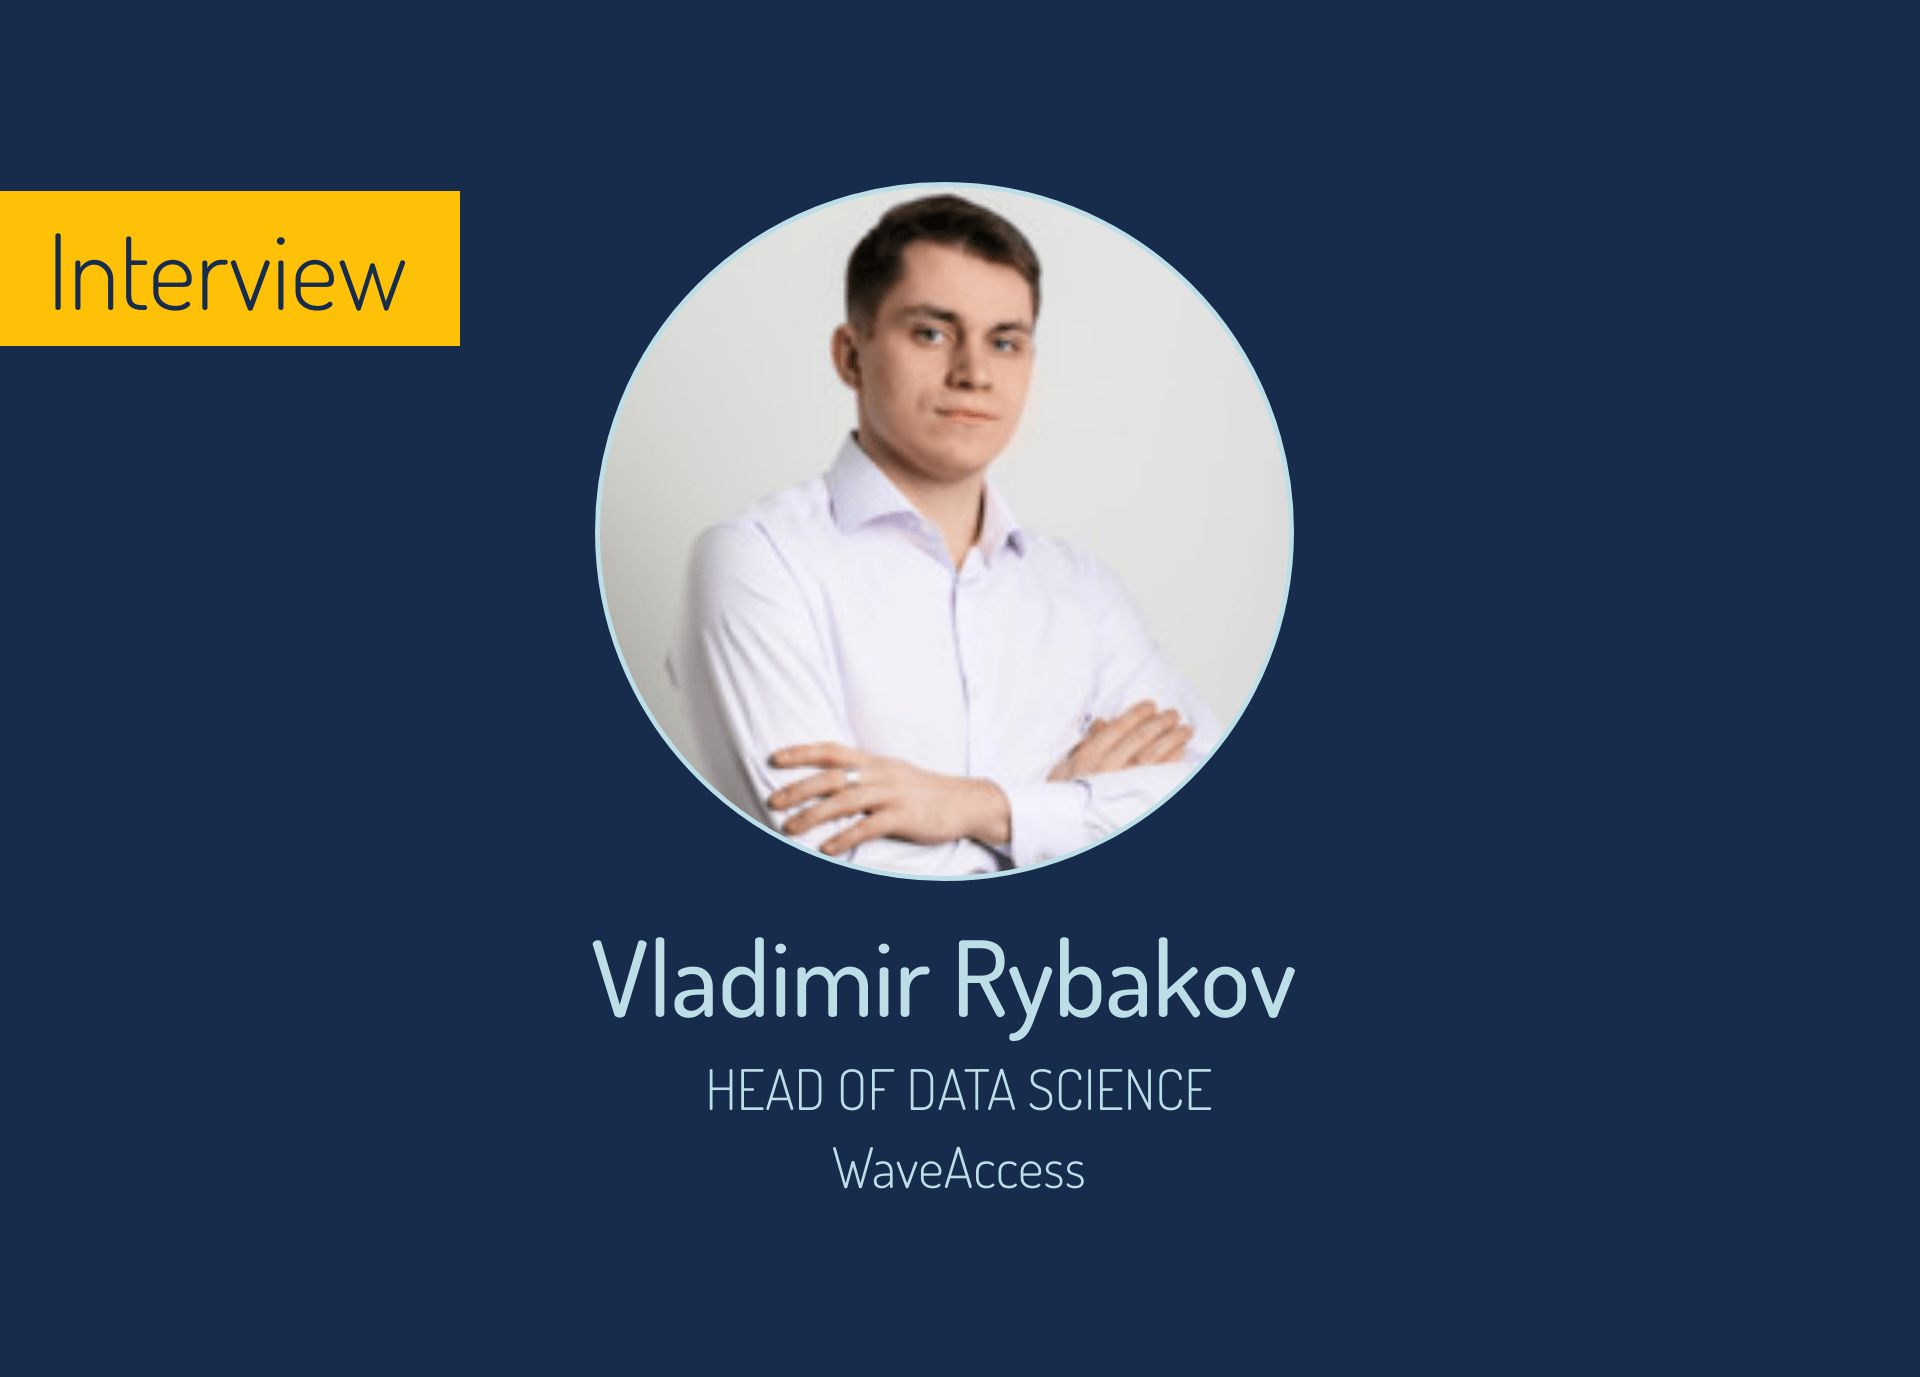 /ml-that-works-interview-with-vladimir-rybakov-tc143tt8 feature image